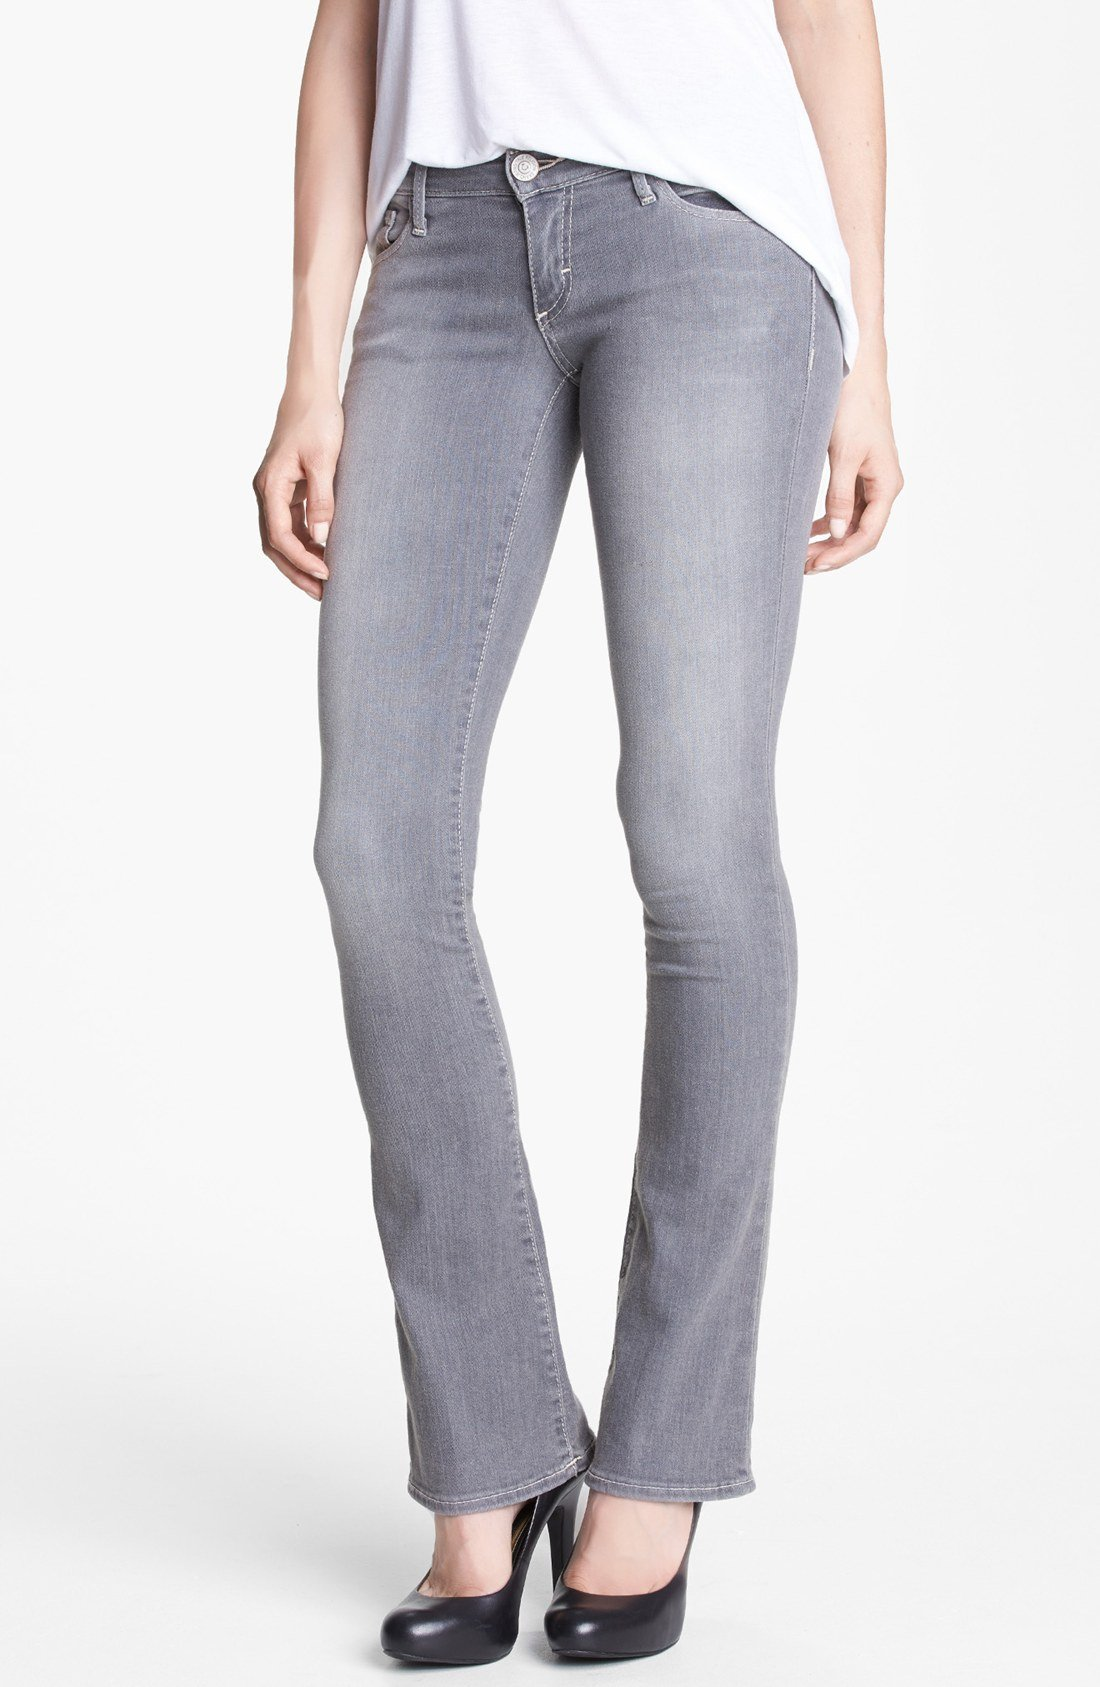 True religion Lexy Mini Bootcut Jeans in Gray | Lyst